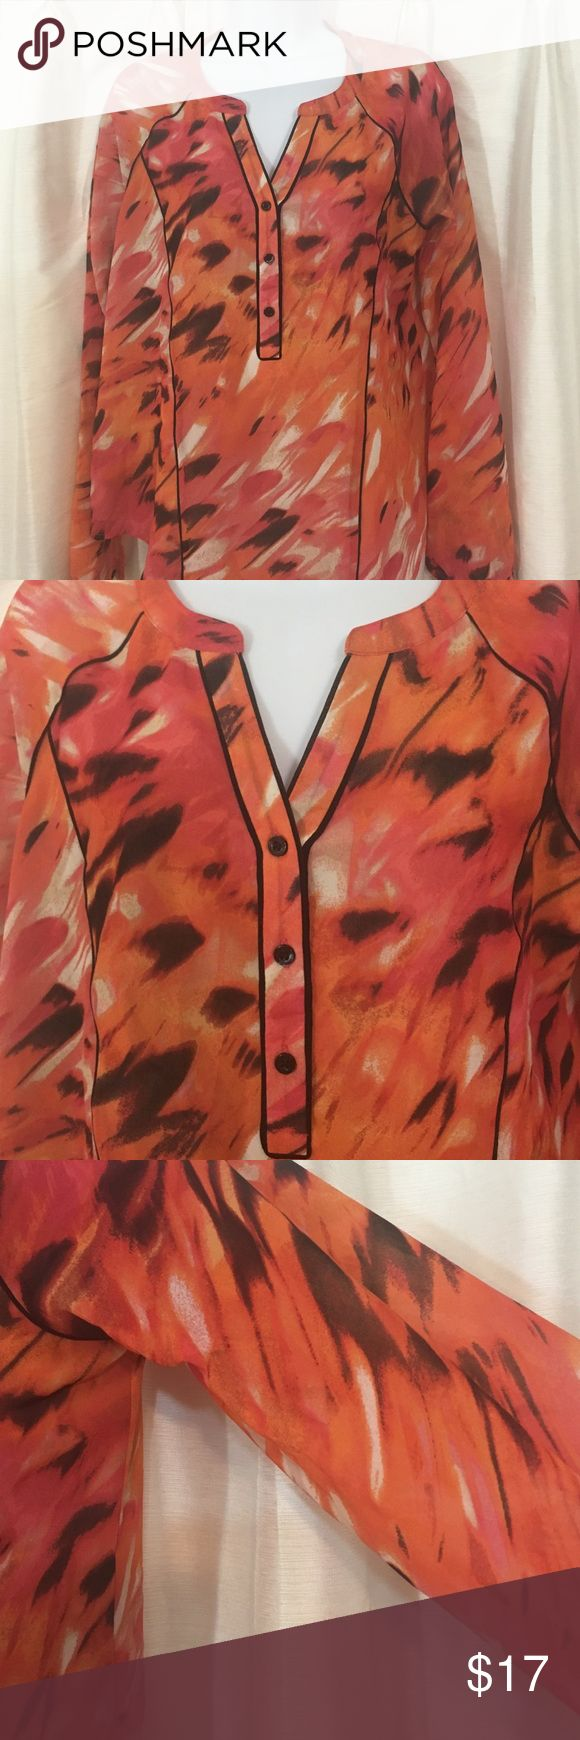 Calvin Klein Animal Print Blouse Sz S Calvin Klein Animal Print Blouse. Sleeves are sheer and body has an underlay. Sz S, Never worn Calvin Klein Tops Blouses